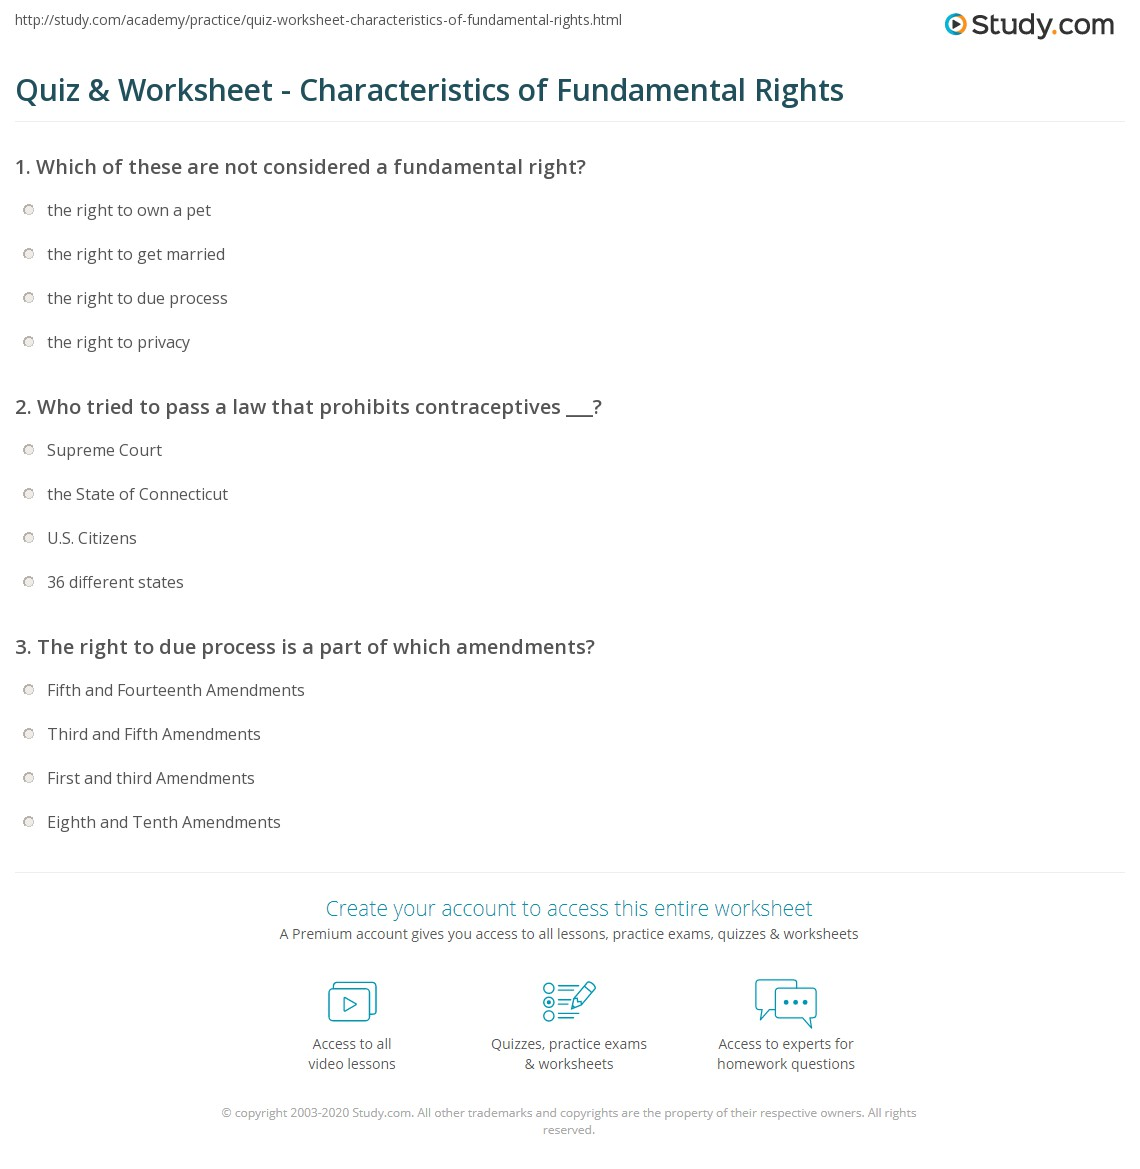 Aldiablosus  Pleasing Quiz Amp Worksheet  Characteristics Of Fundamental Rights  Studycom With Gorgeous Print What Are Fundamental Rights  Definition Types Amp Features Worksheet With Attractive Multiplication Grade  Worksheets Also Sheet Music Worksheets In Addition Doing Verbs Worksheet And Grade  Literacy Worksheets As Well As My Pyramid Worksheet Additionally Grade  Fractions Worksheet From Studycom With Aldiablosus  Gorgeous Quiz Amp Worksheet  Characteristics Of Fundamental Rights  Studycom With Attractive Print What Are Fundamental Rights  Definition Types Amp Features Worksheet And Pleasing Multiplication Grade  Worksheets Also Sheet Music Worksheets In Addition Doing Verbs Worksheet From Studycom